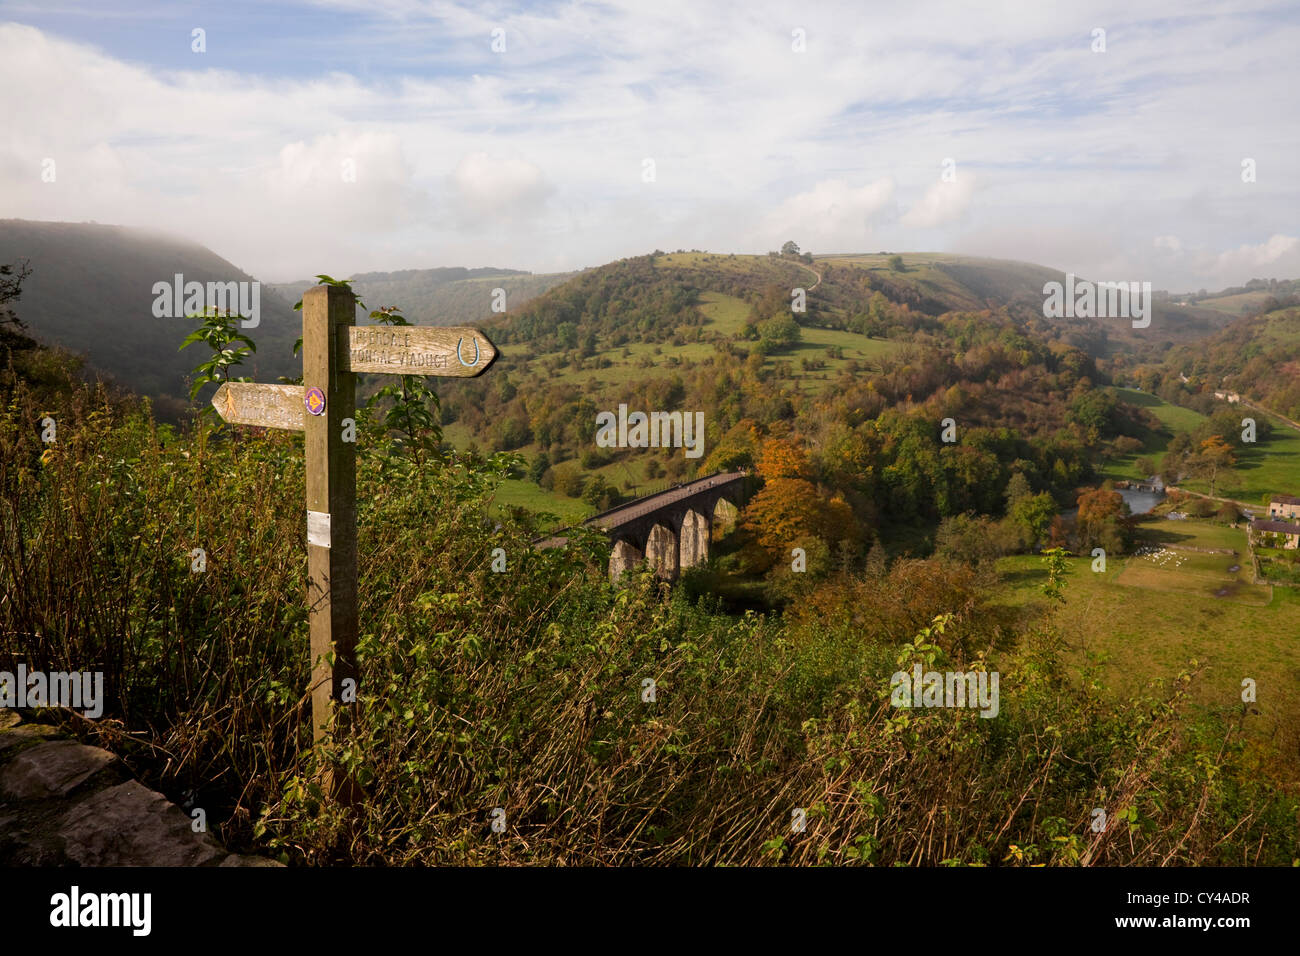 signpost-at-monsal-head-looking-over-the